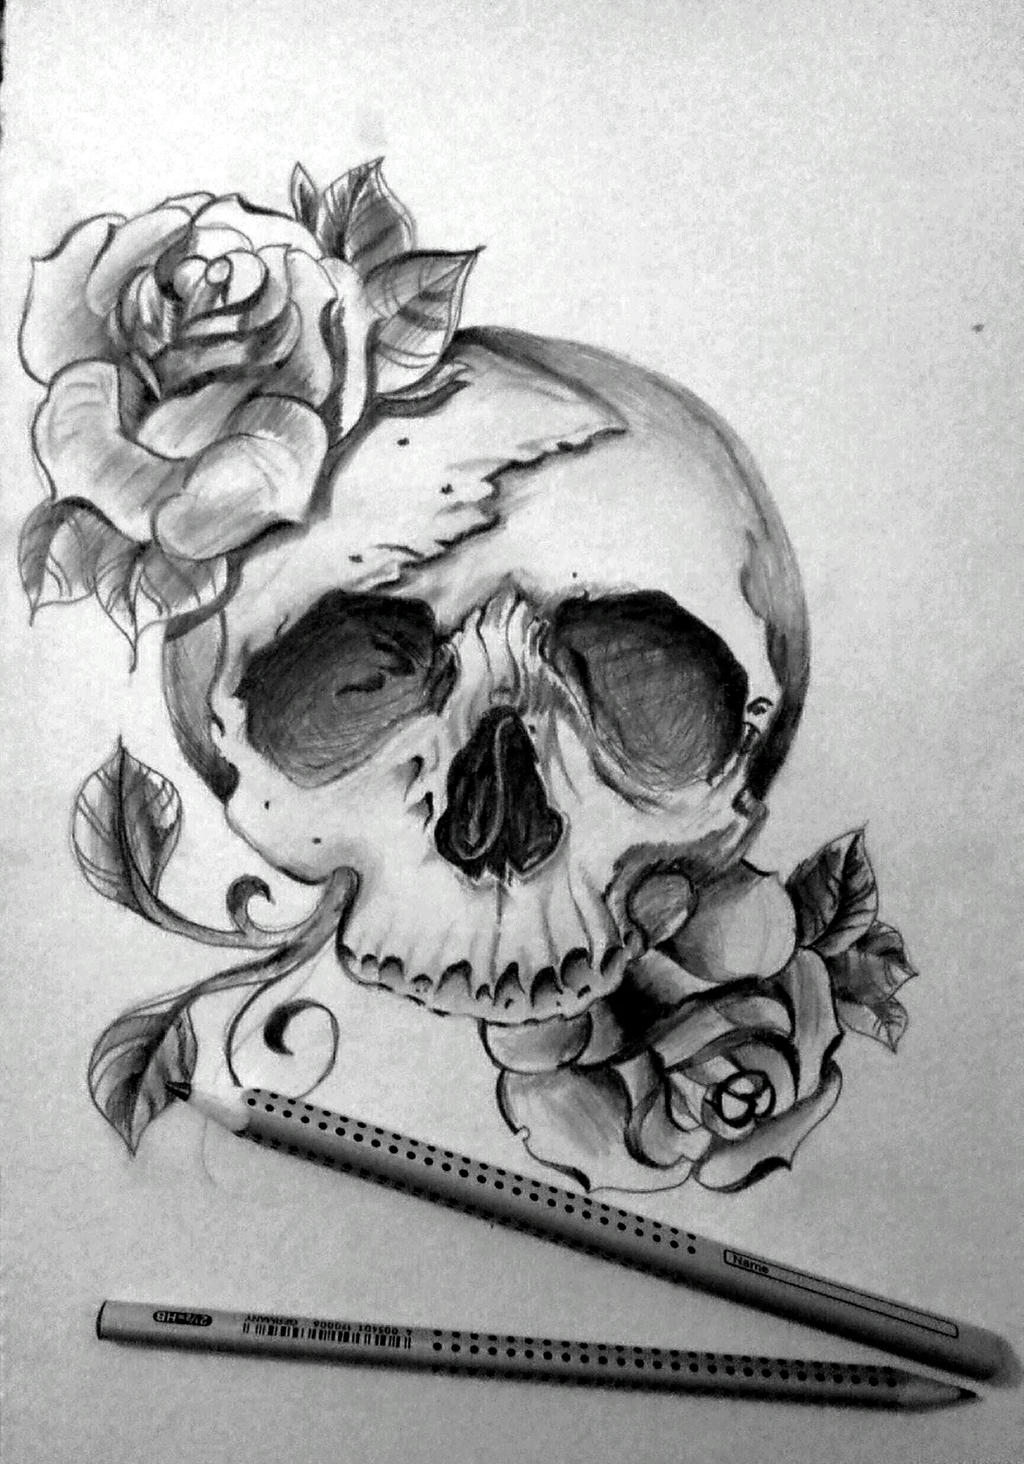 Pictures Of Awesome Drawings Of Roses And Skulls Kidskunst Info